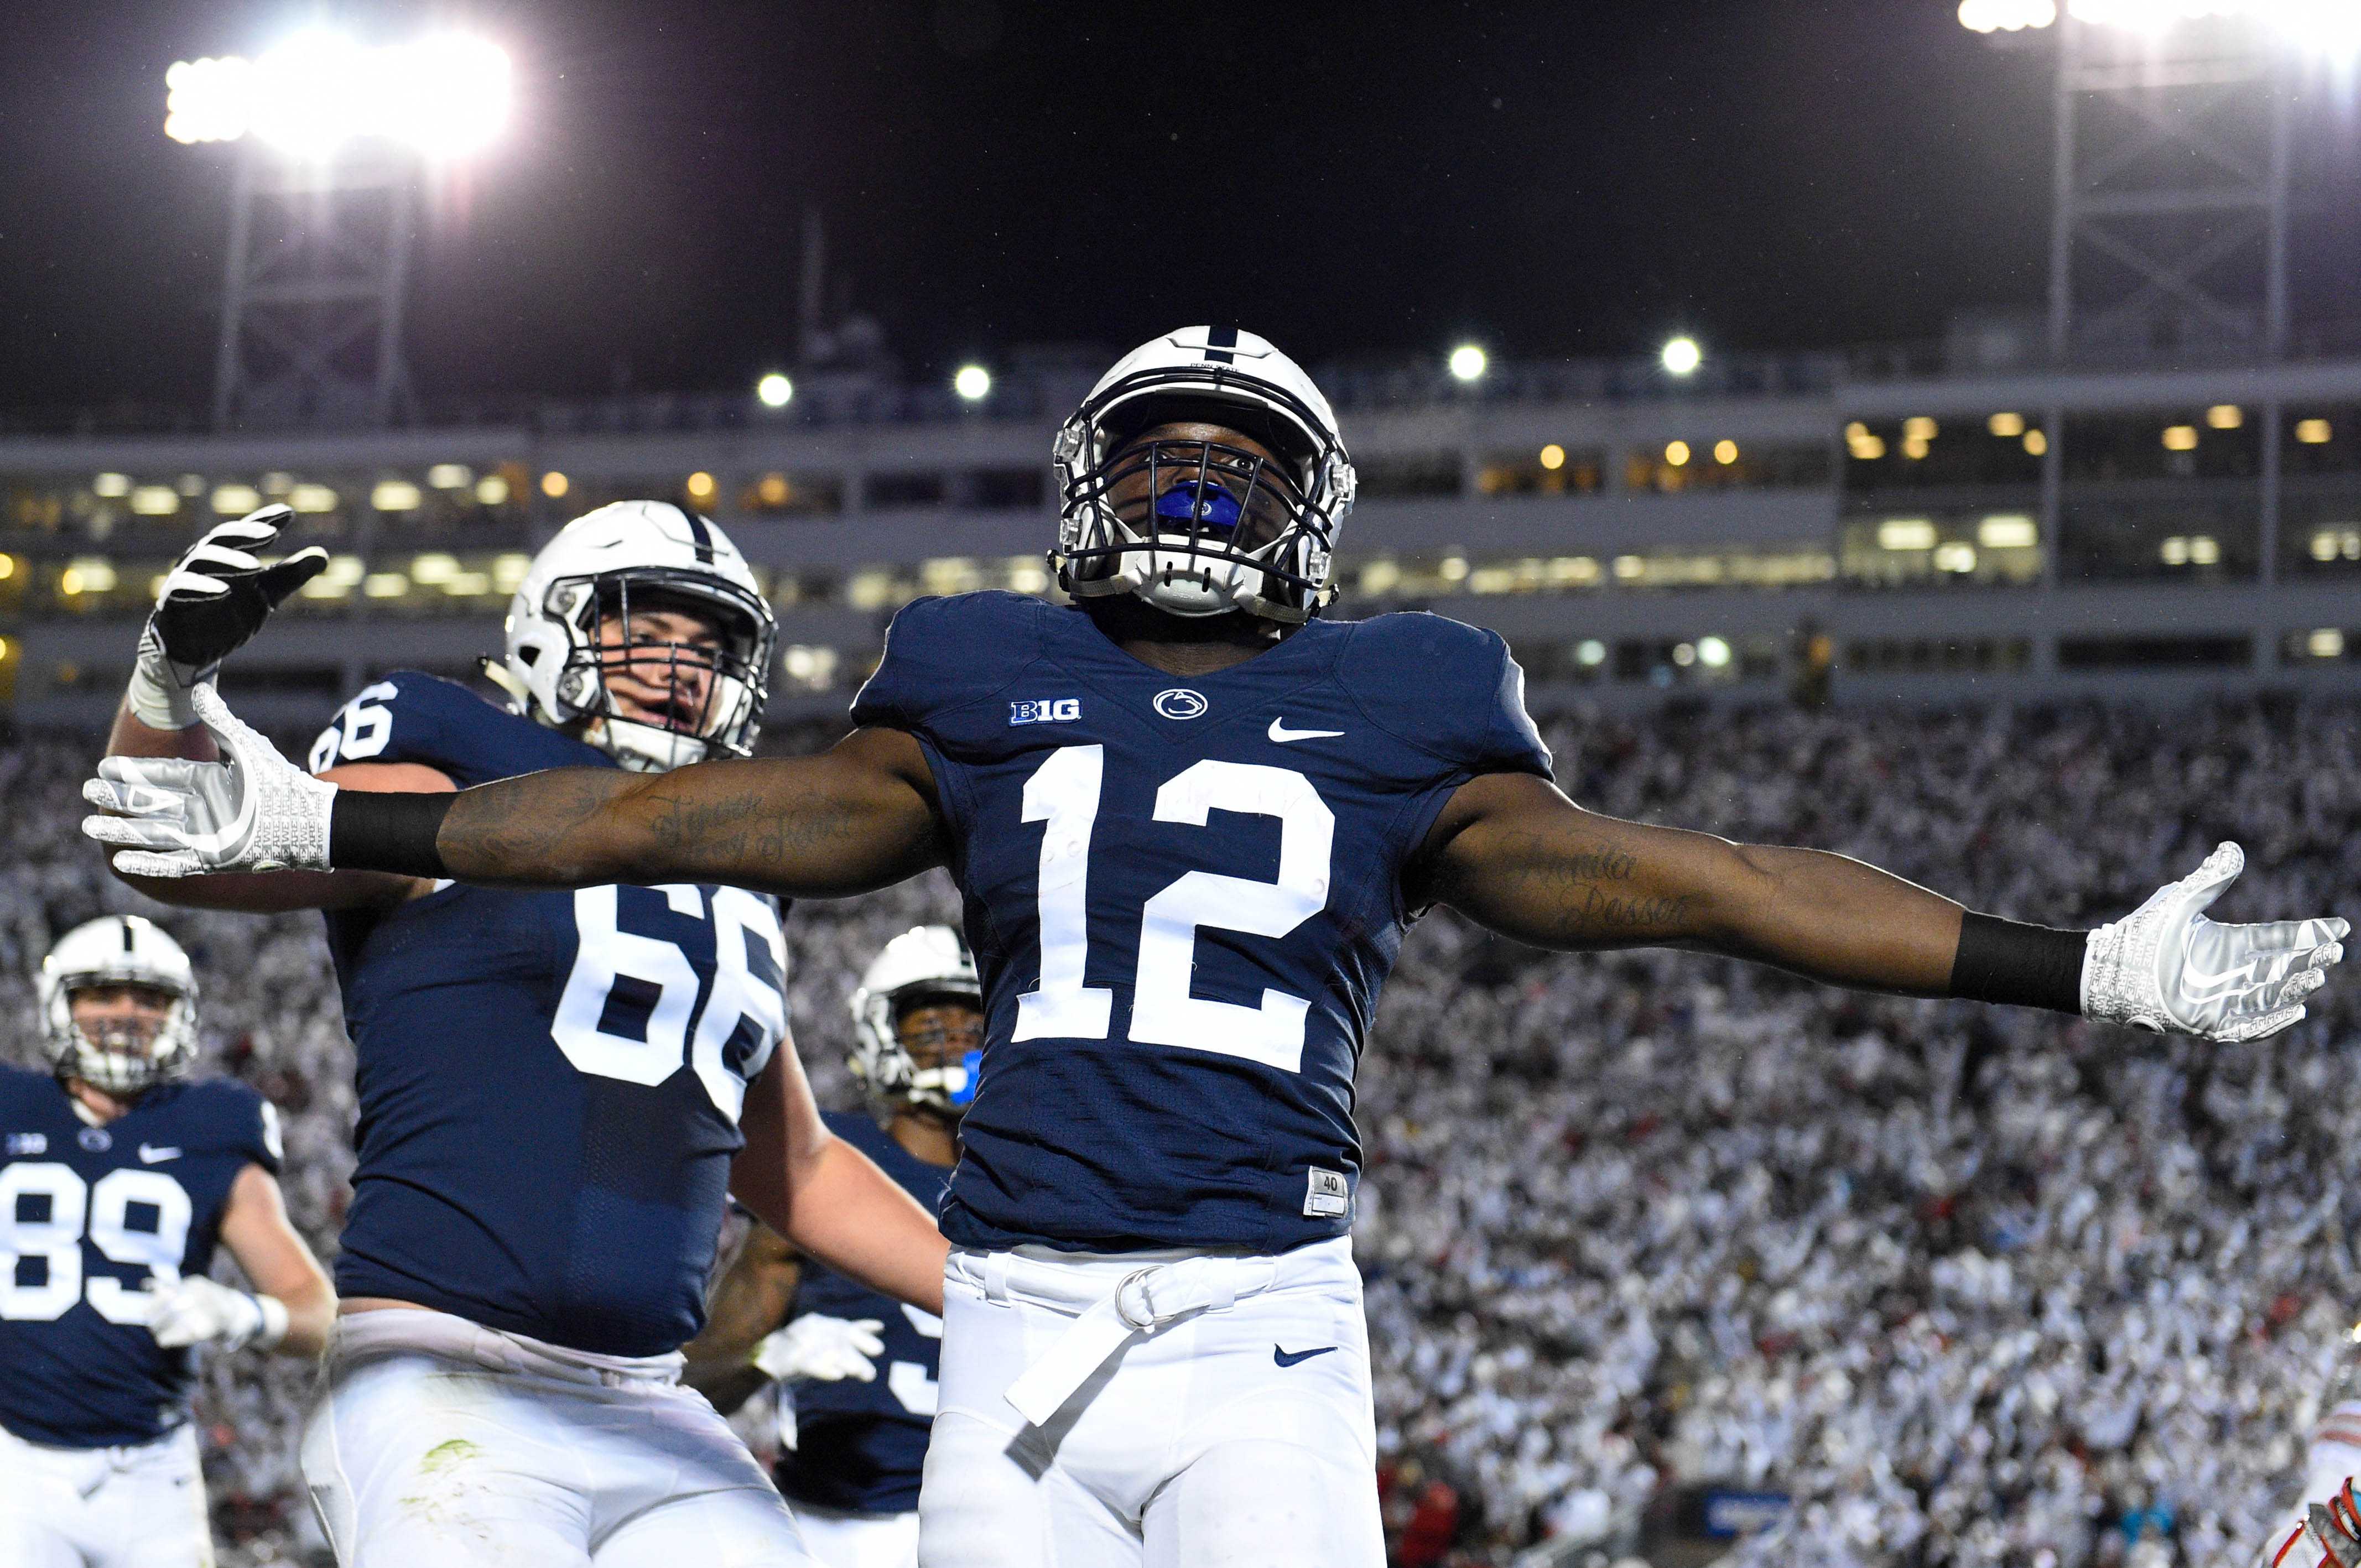 Three Nittany Lions honored by Big Ten